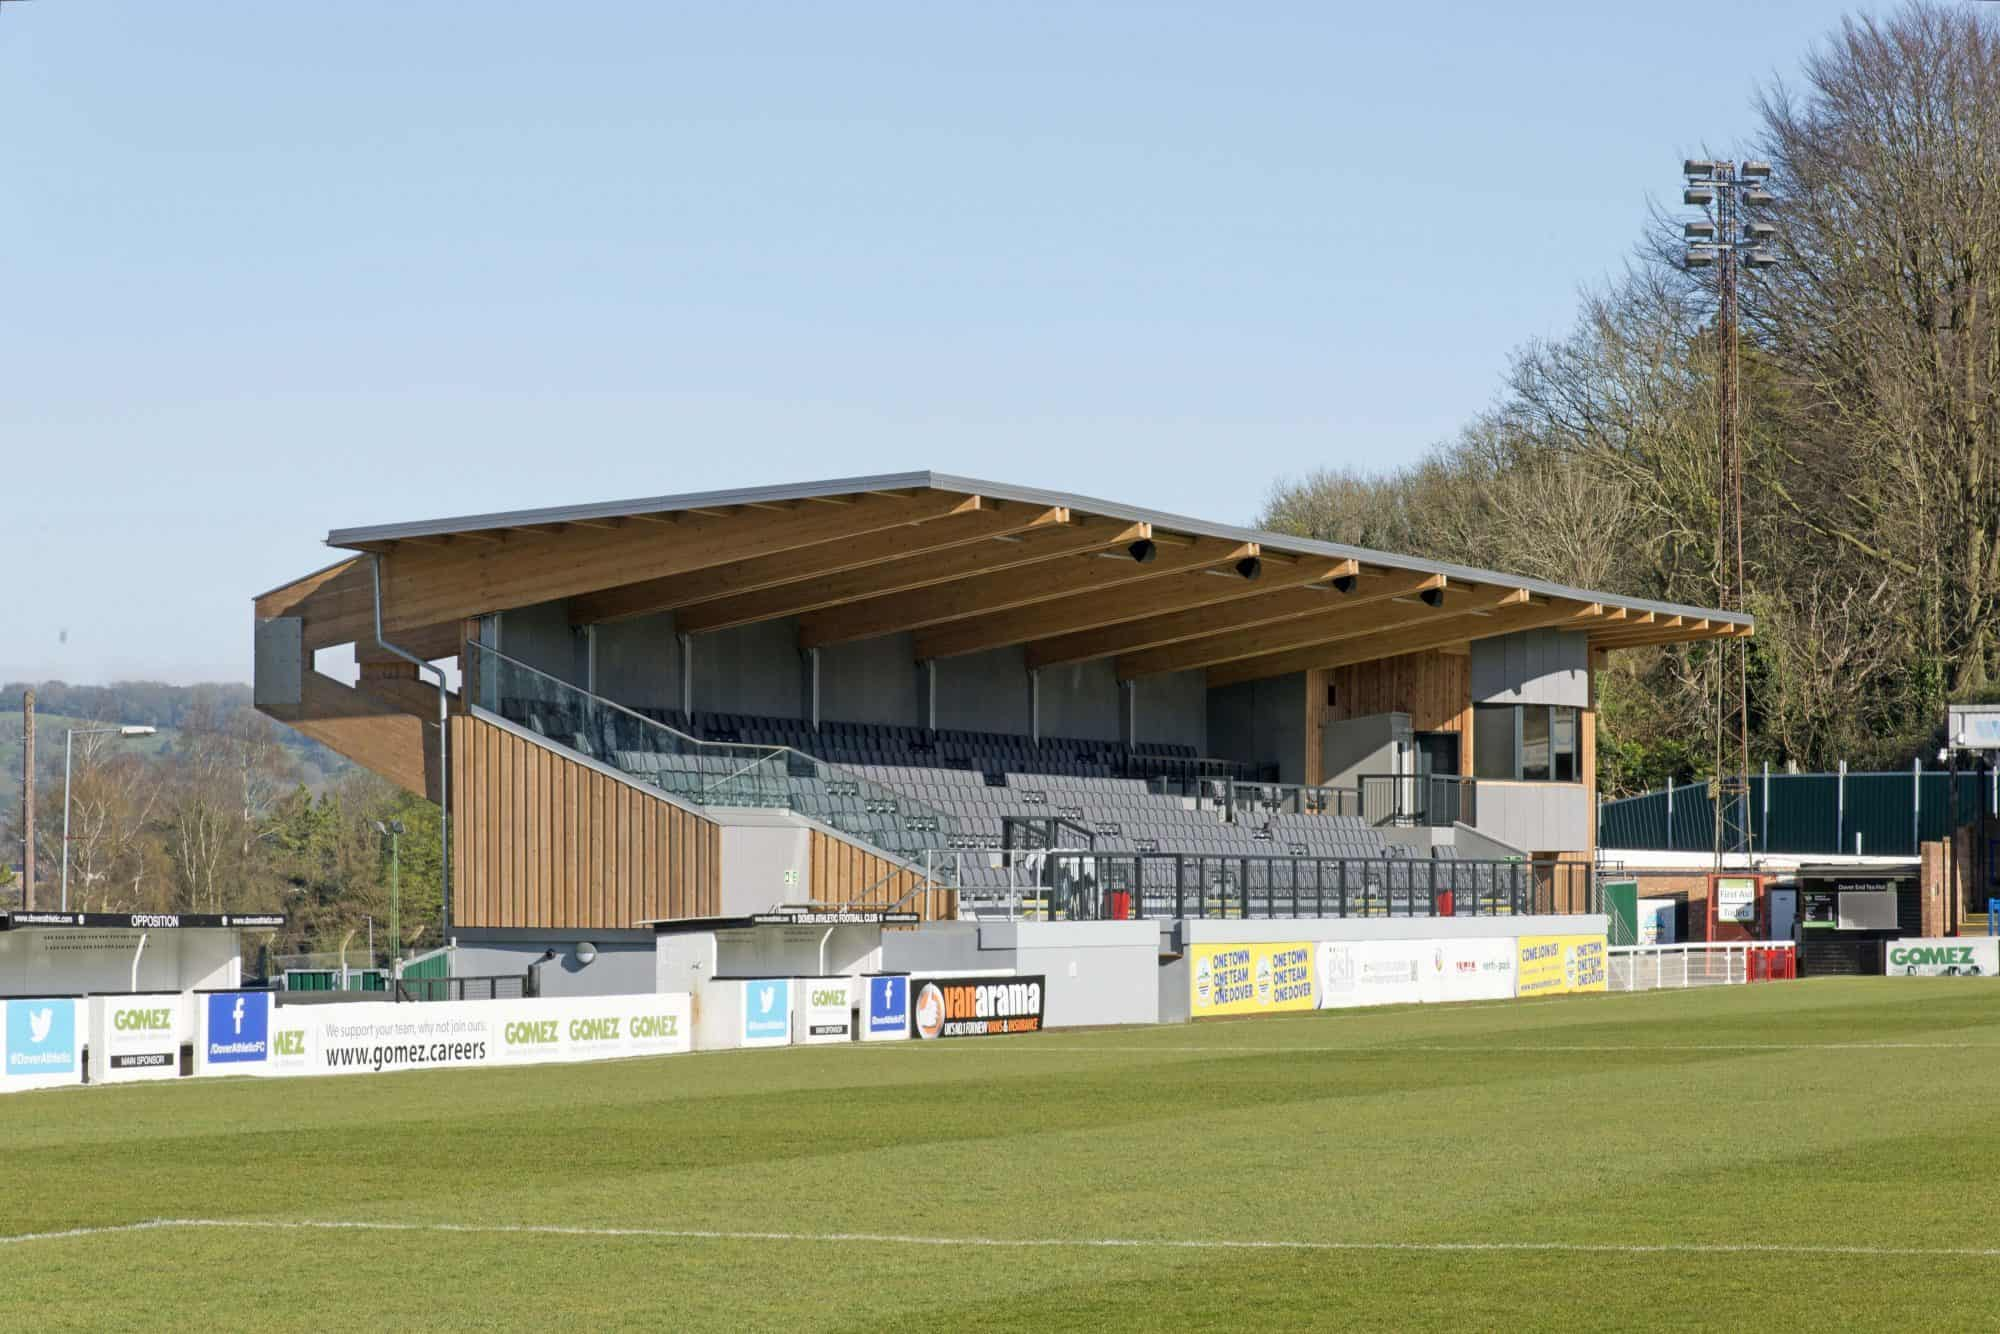 Dover Athletic Family Stand 3